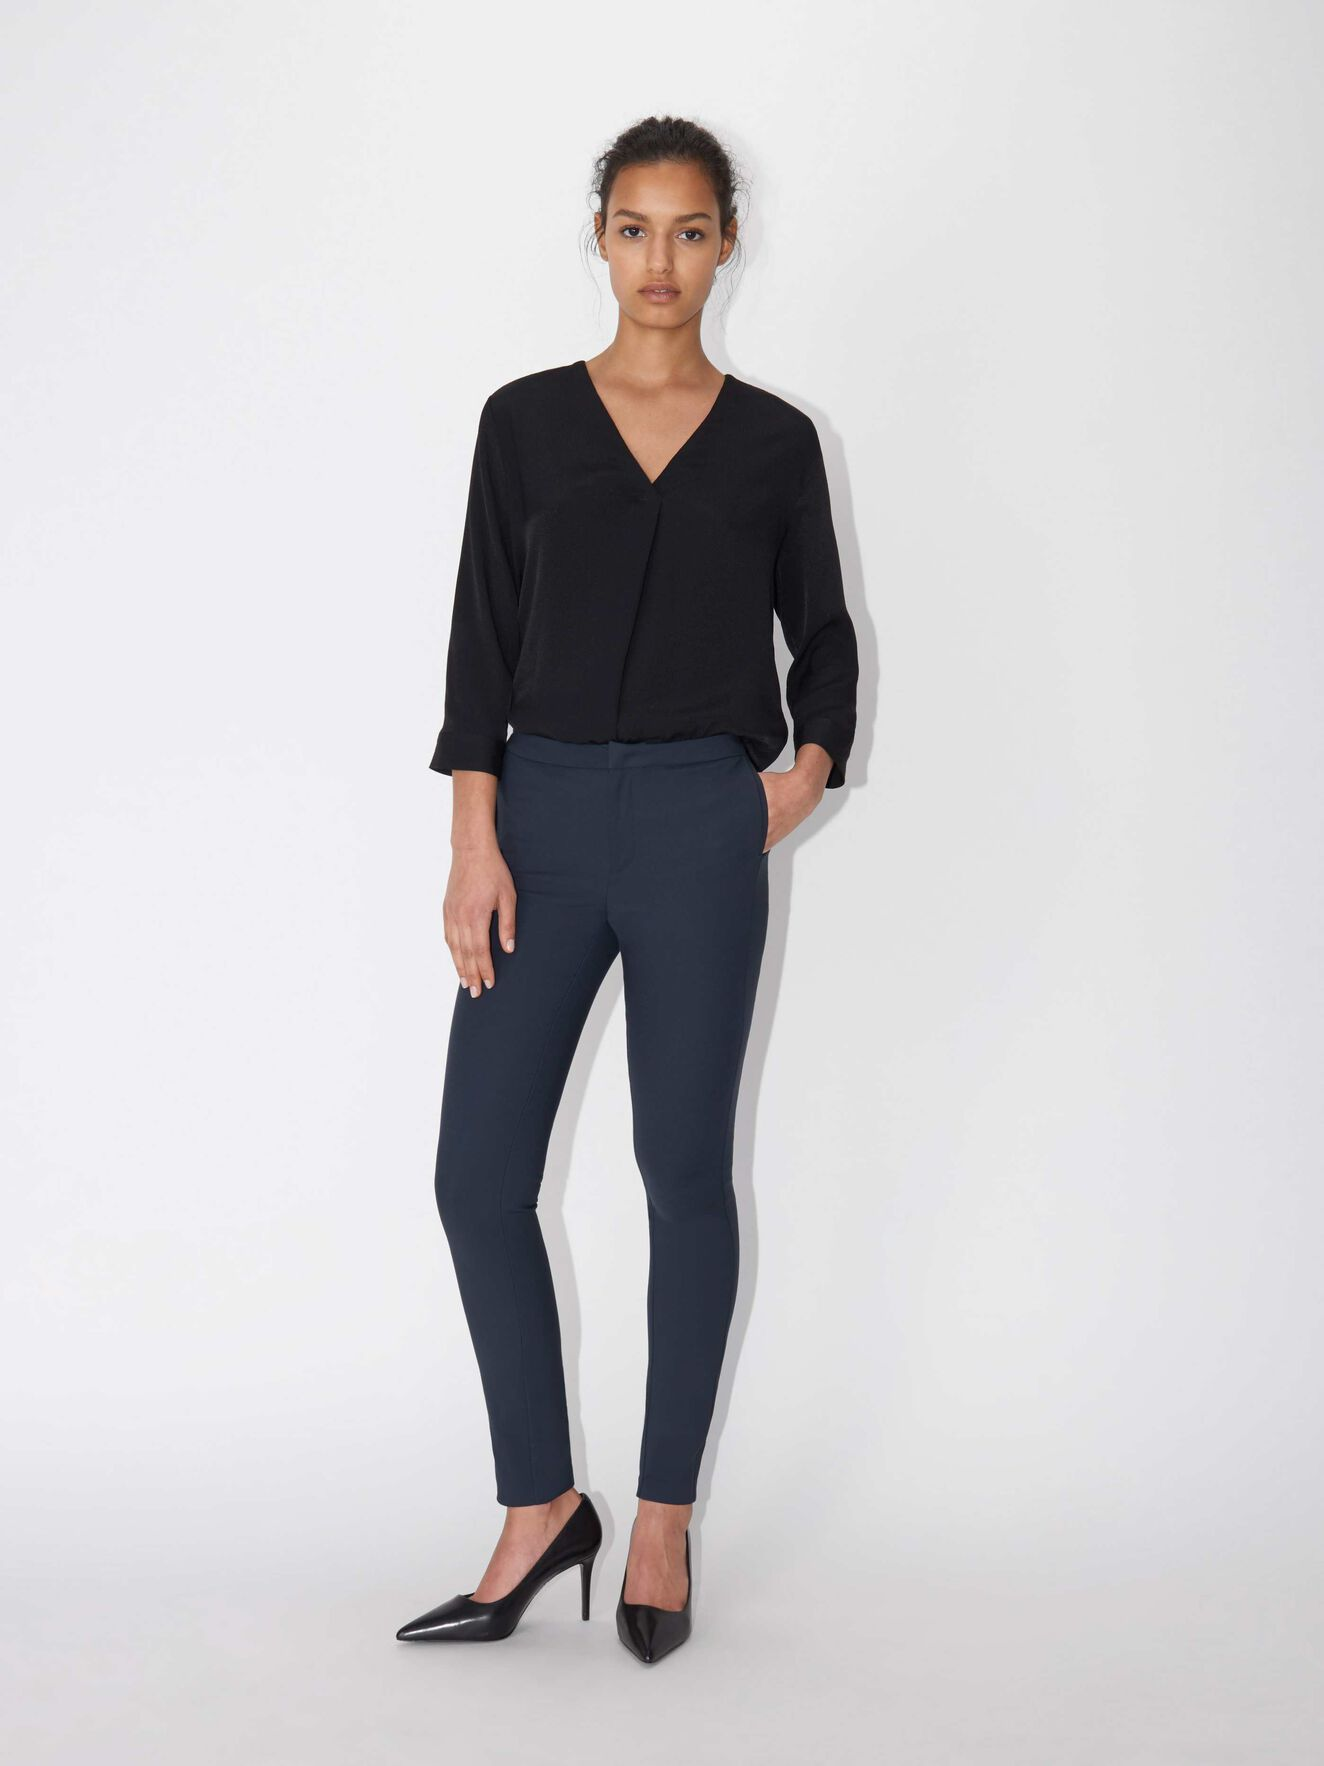 Cristin S trousers in Midnight Blue from Tiger of Sweden